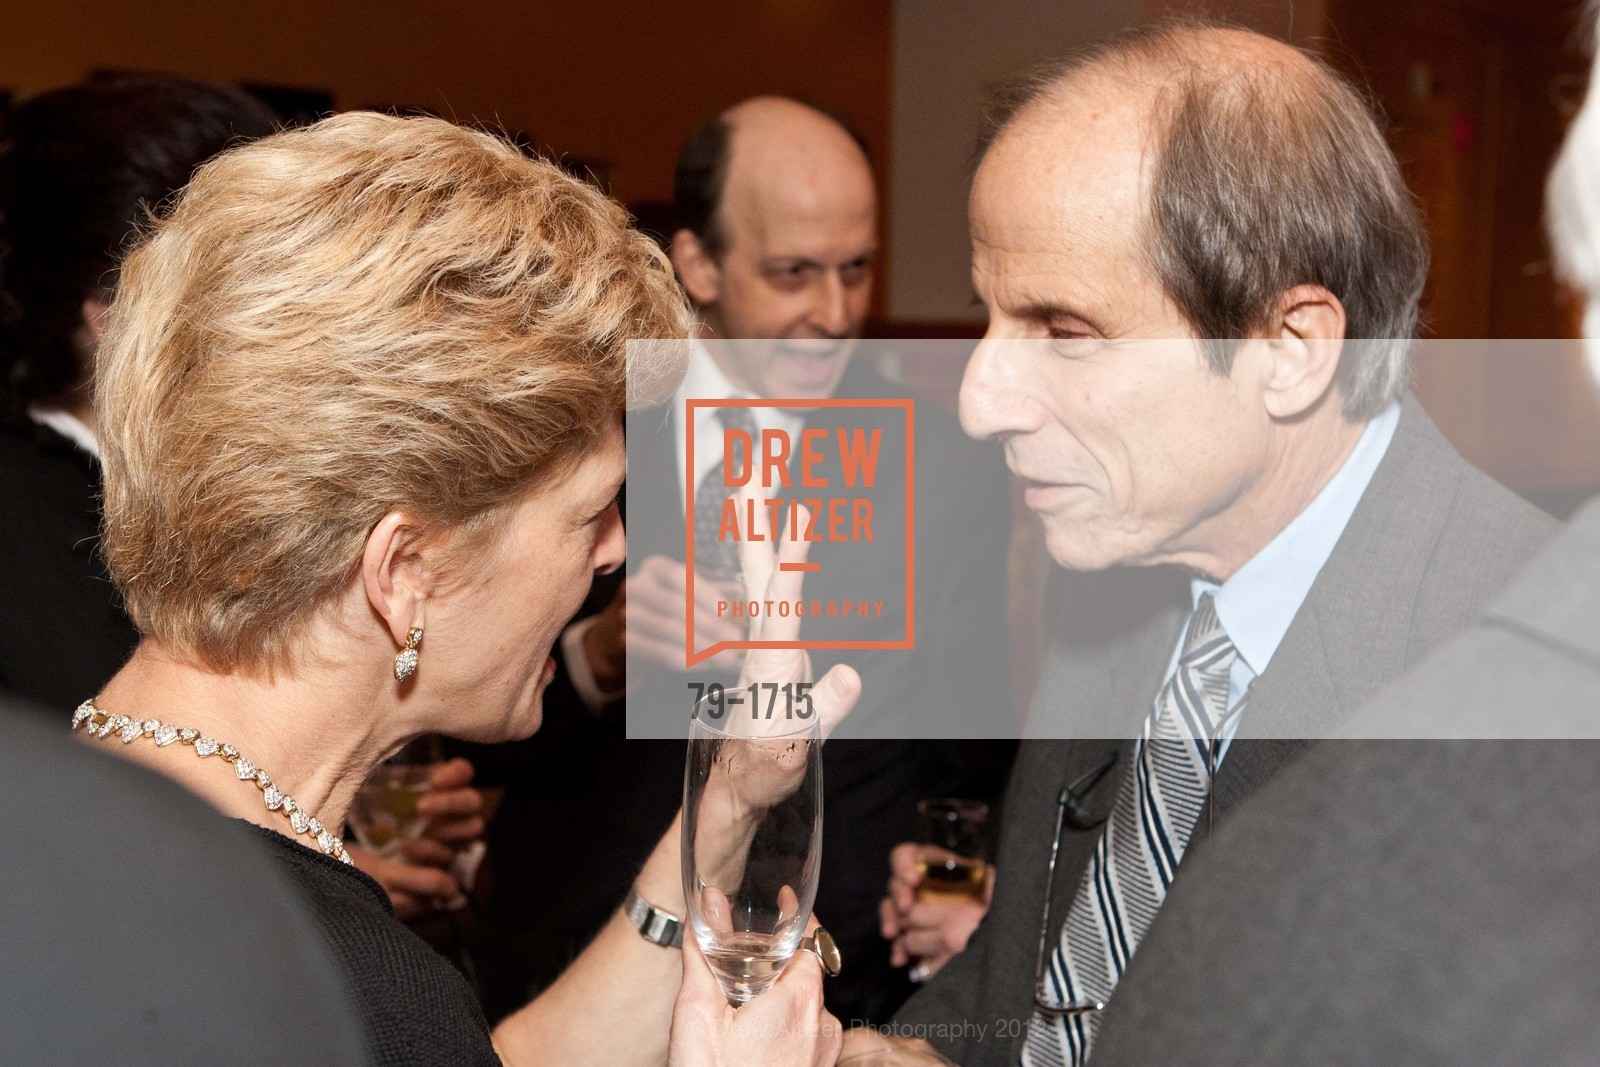 Carey Perloff, Michael Krasny, Photo #79-1715